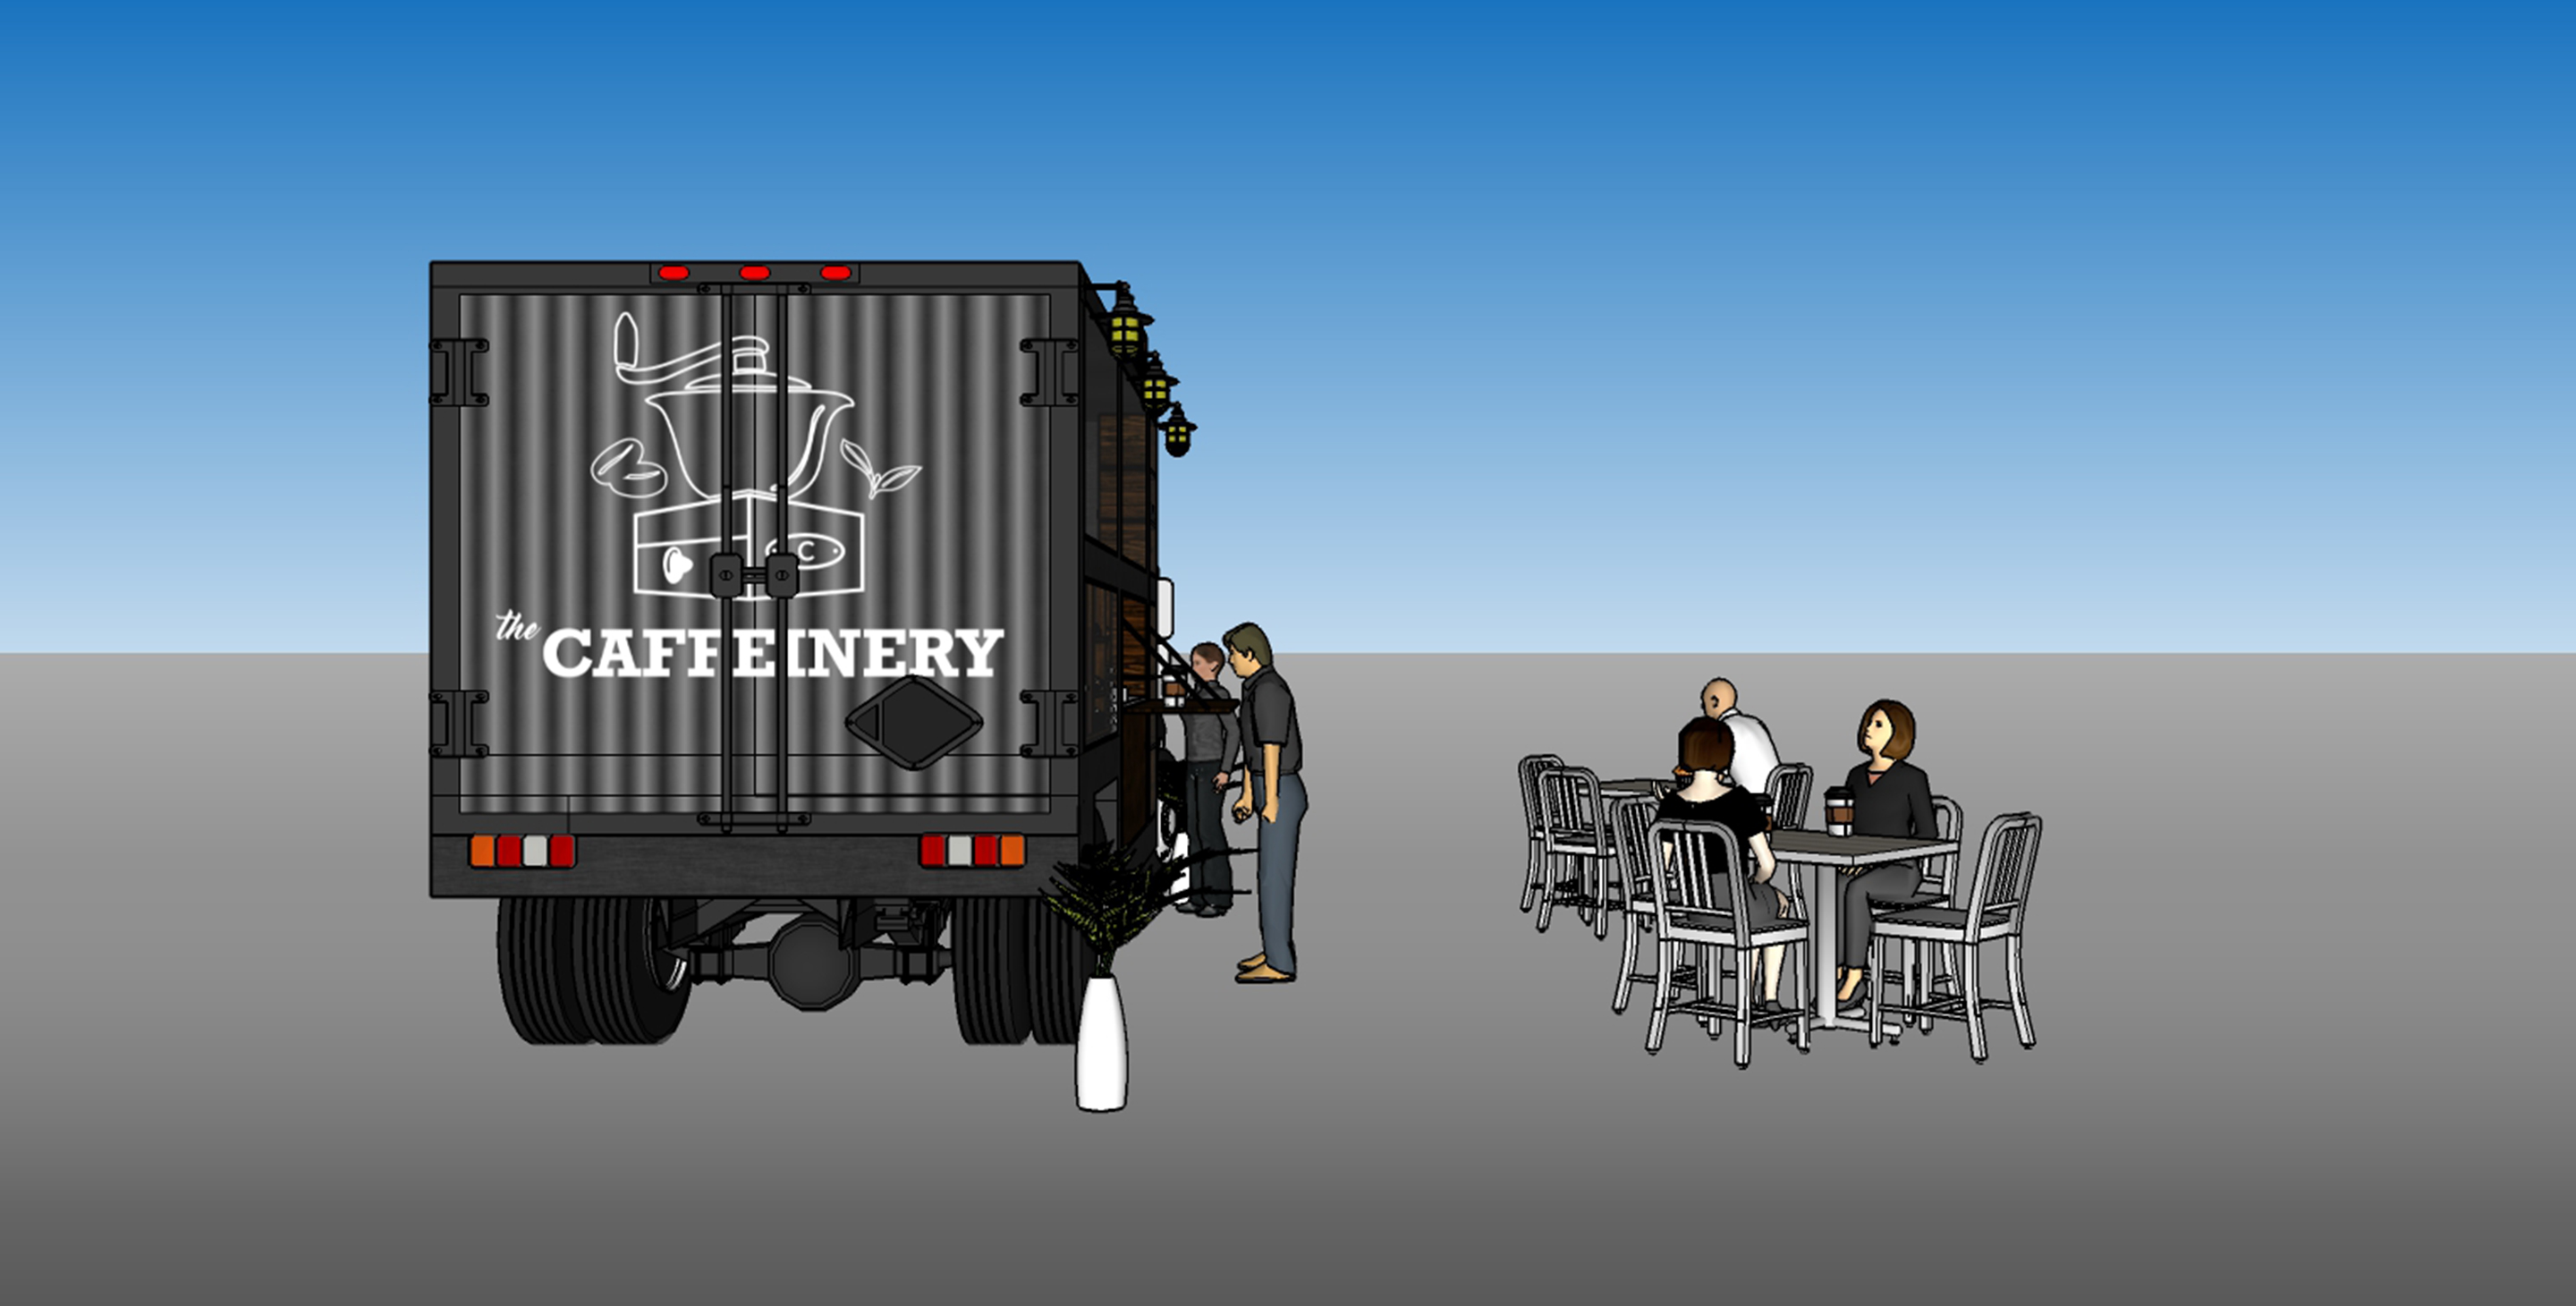 TheCaffeinery_Truck2